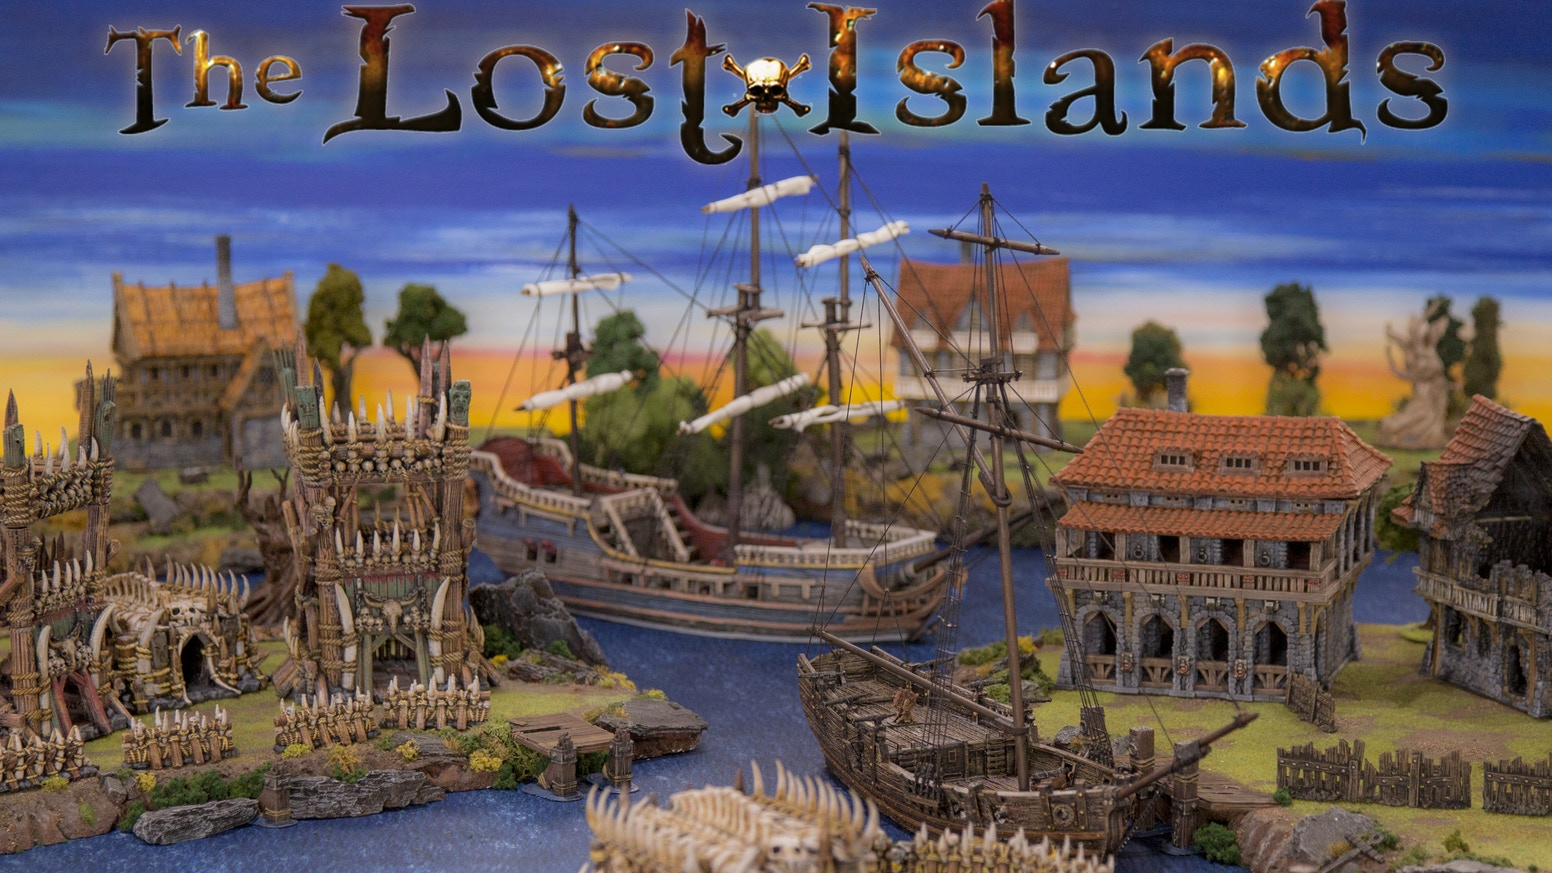 The Lost Islands - 3D printable Terrain for RPG and Wargames is the top crowdfunding project launched today. The Lost Islands - 3D printable Terrain for RPG and Wargames raised over $208867 from 1432 backers. Other top projects include PLATA FORMA: una colección de Stromboli.Associates, Allison Red, No Holes Damage Free Hanging Meets Modern Design (Canceled)...